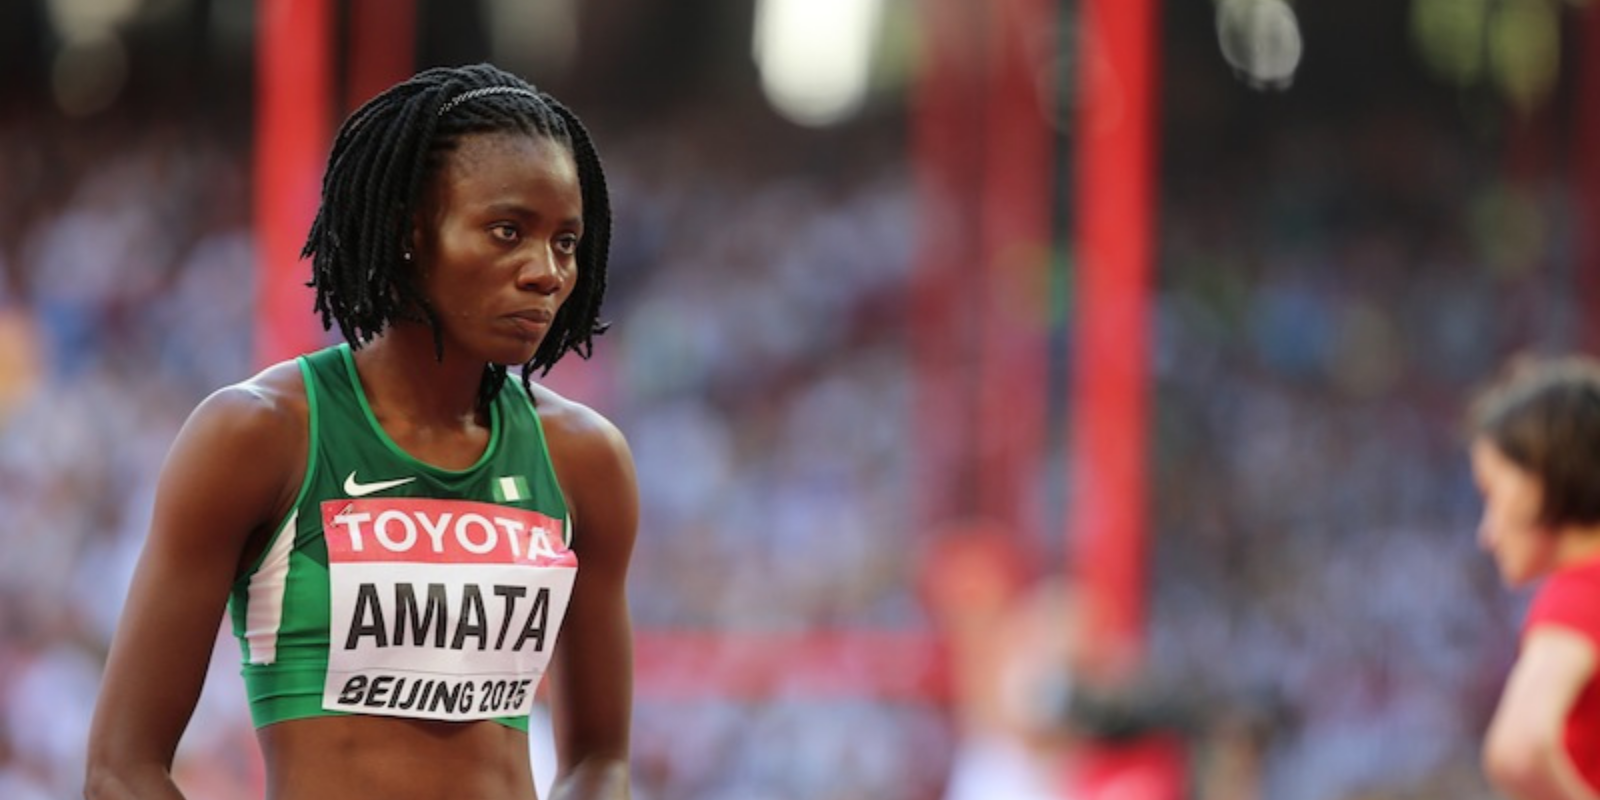 What sport does Doreen Amata participate in?